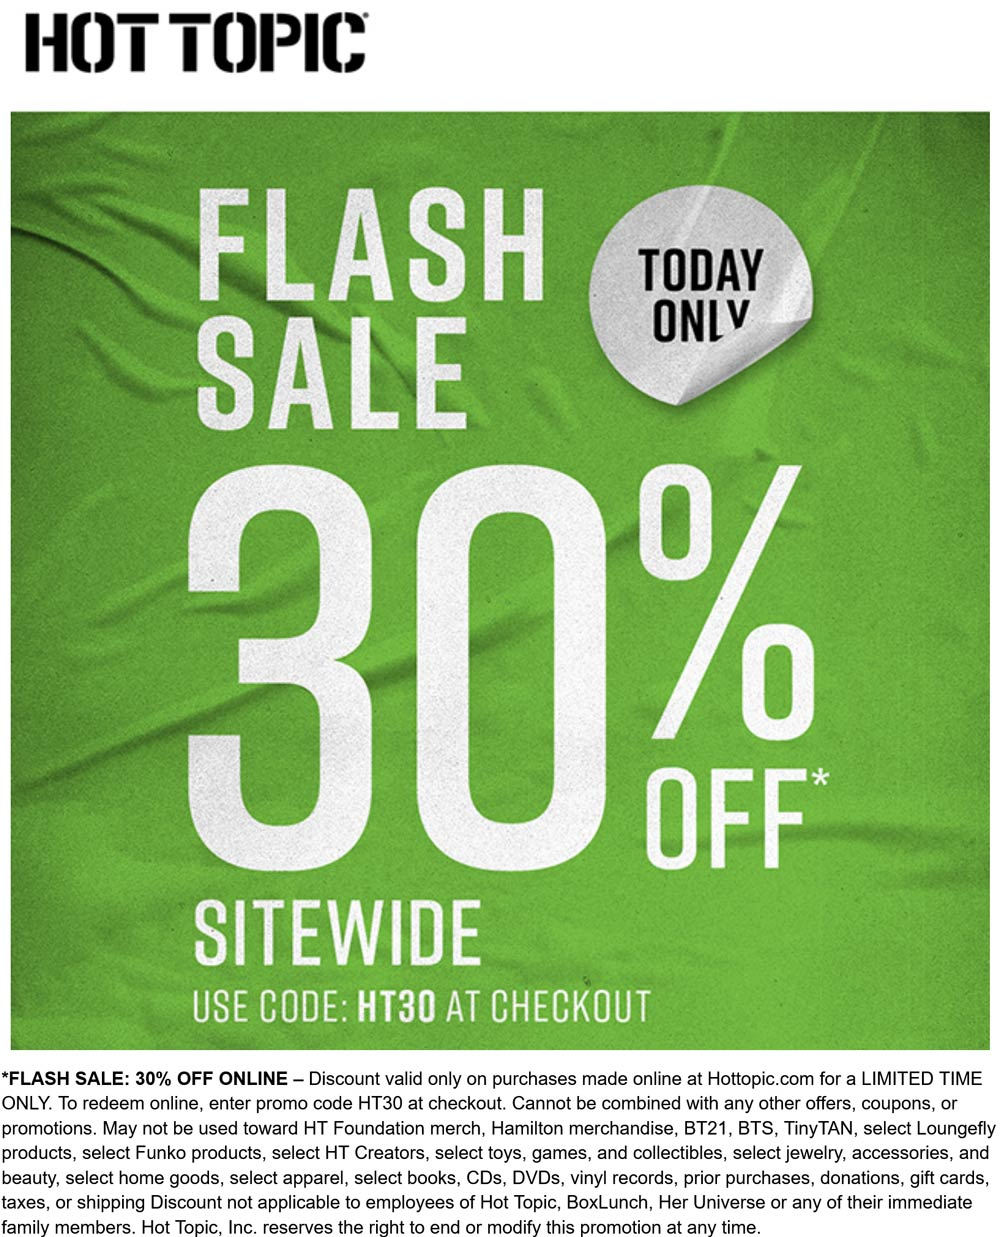 Hot Topic stores Coupon  30% off everything online today at Hot Topic via promo code HT30 #hottopic